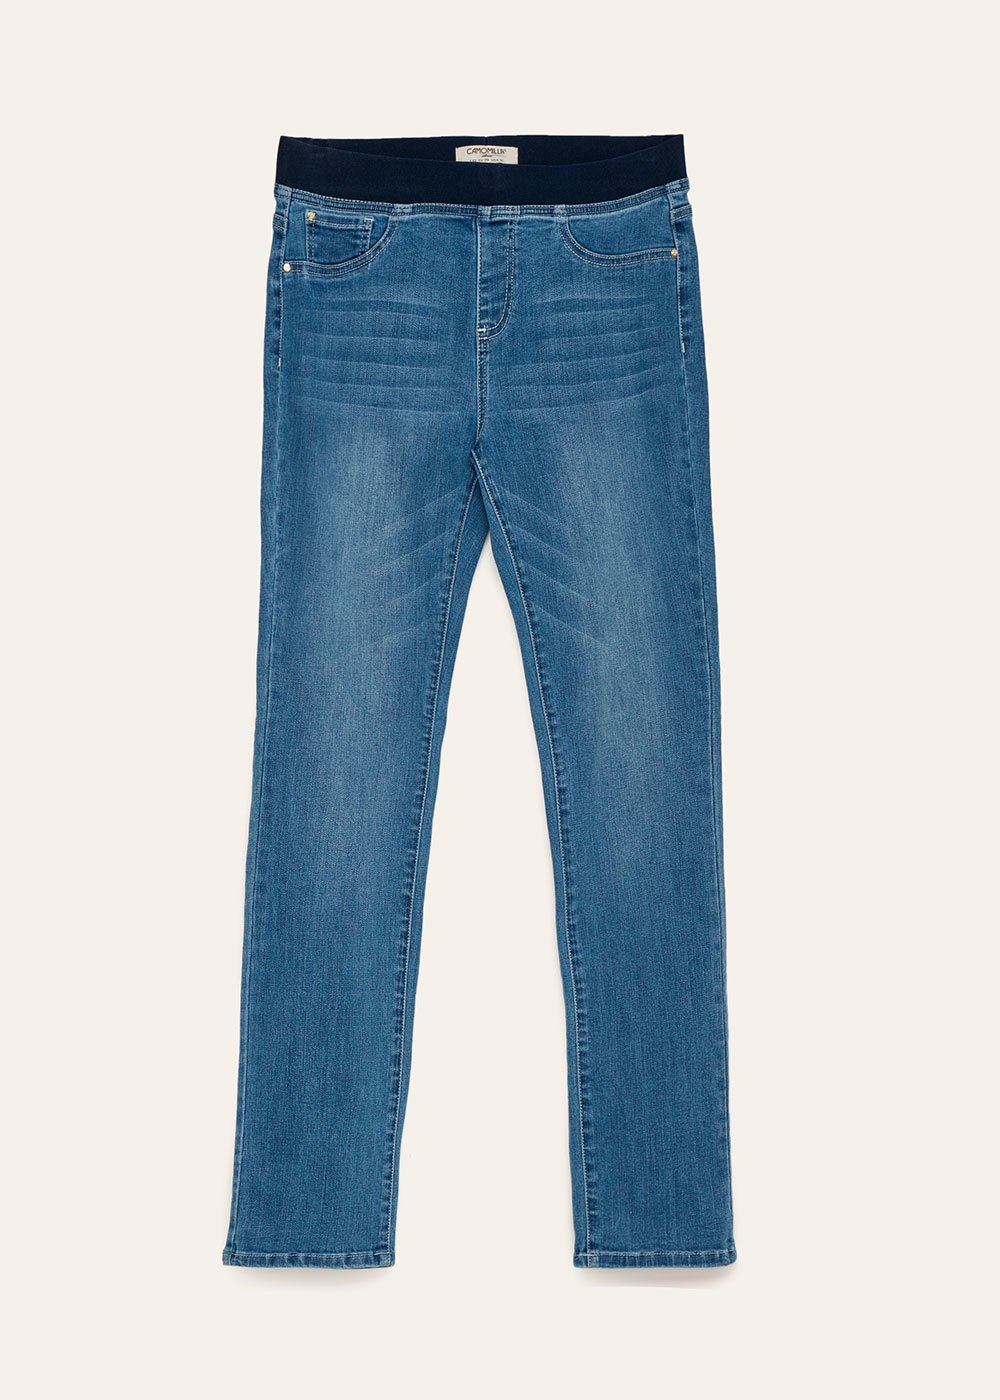 Damian denims with matching elastic band - Light Blue - Woman